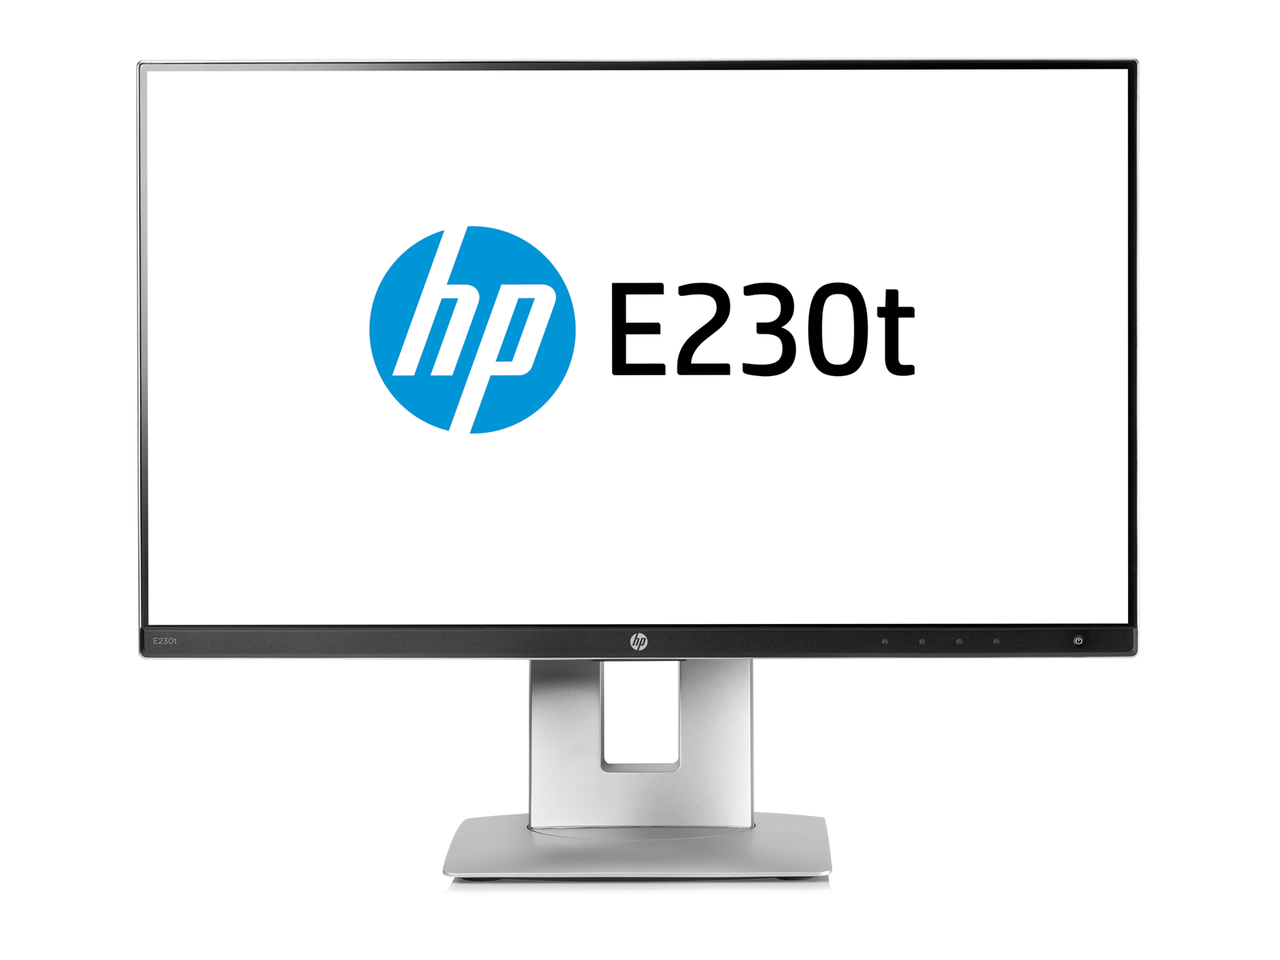 """HP Business E230t 23"""" LCD Touchscreen Monitor"""